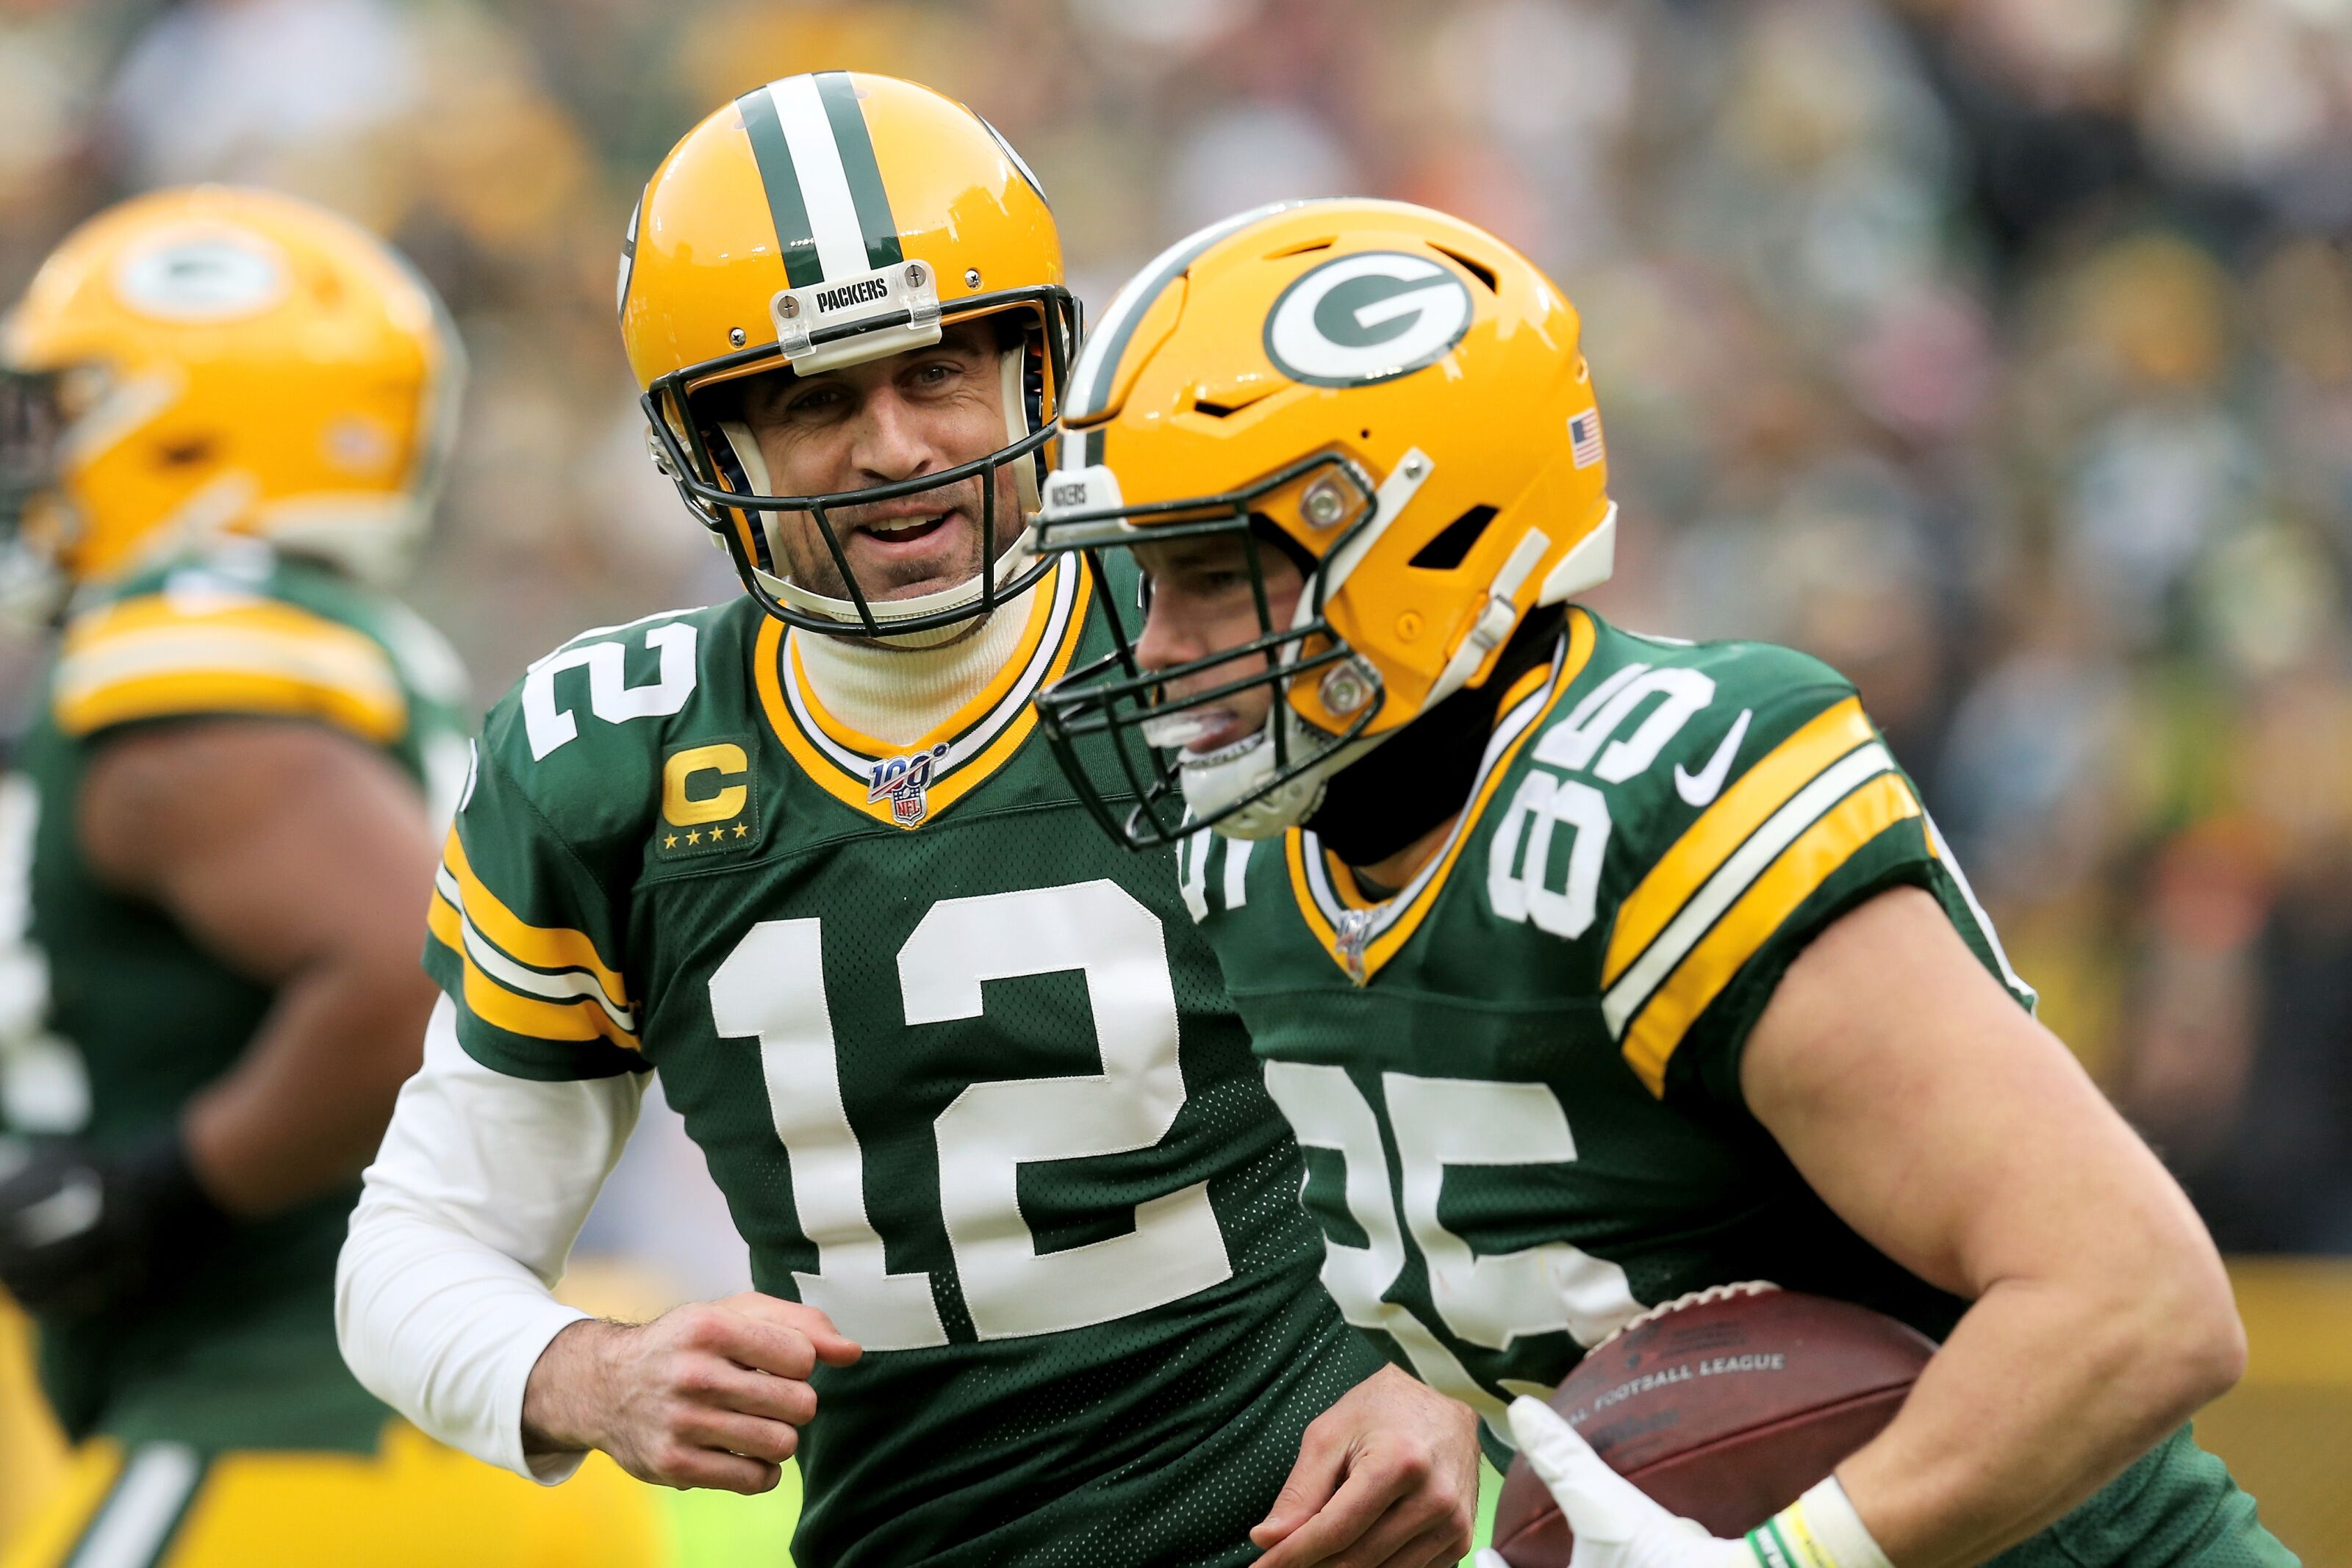 Packers hold on for important victory against Redskins in Week 14